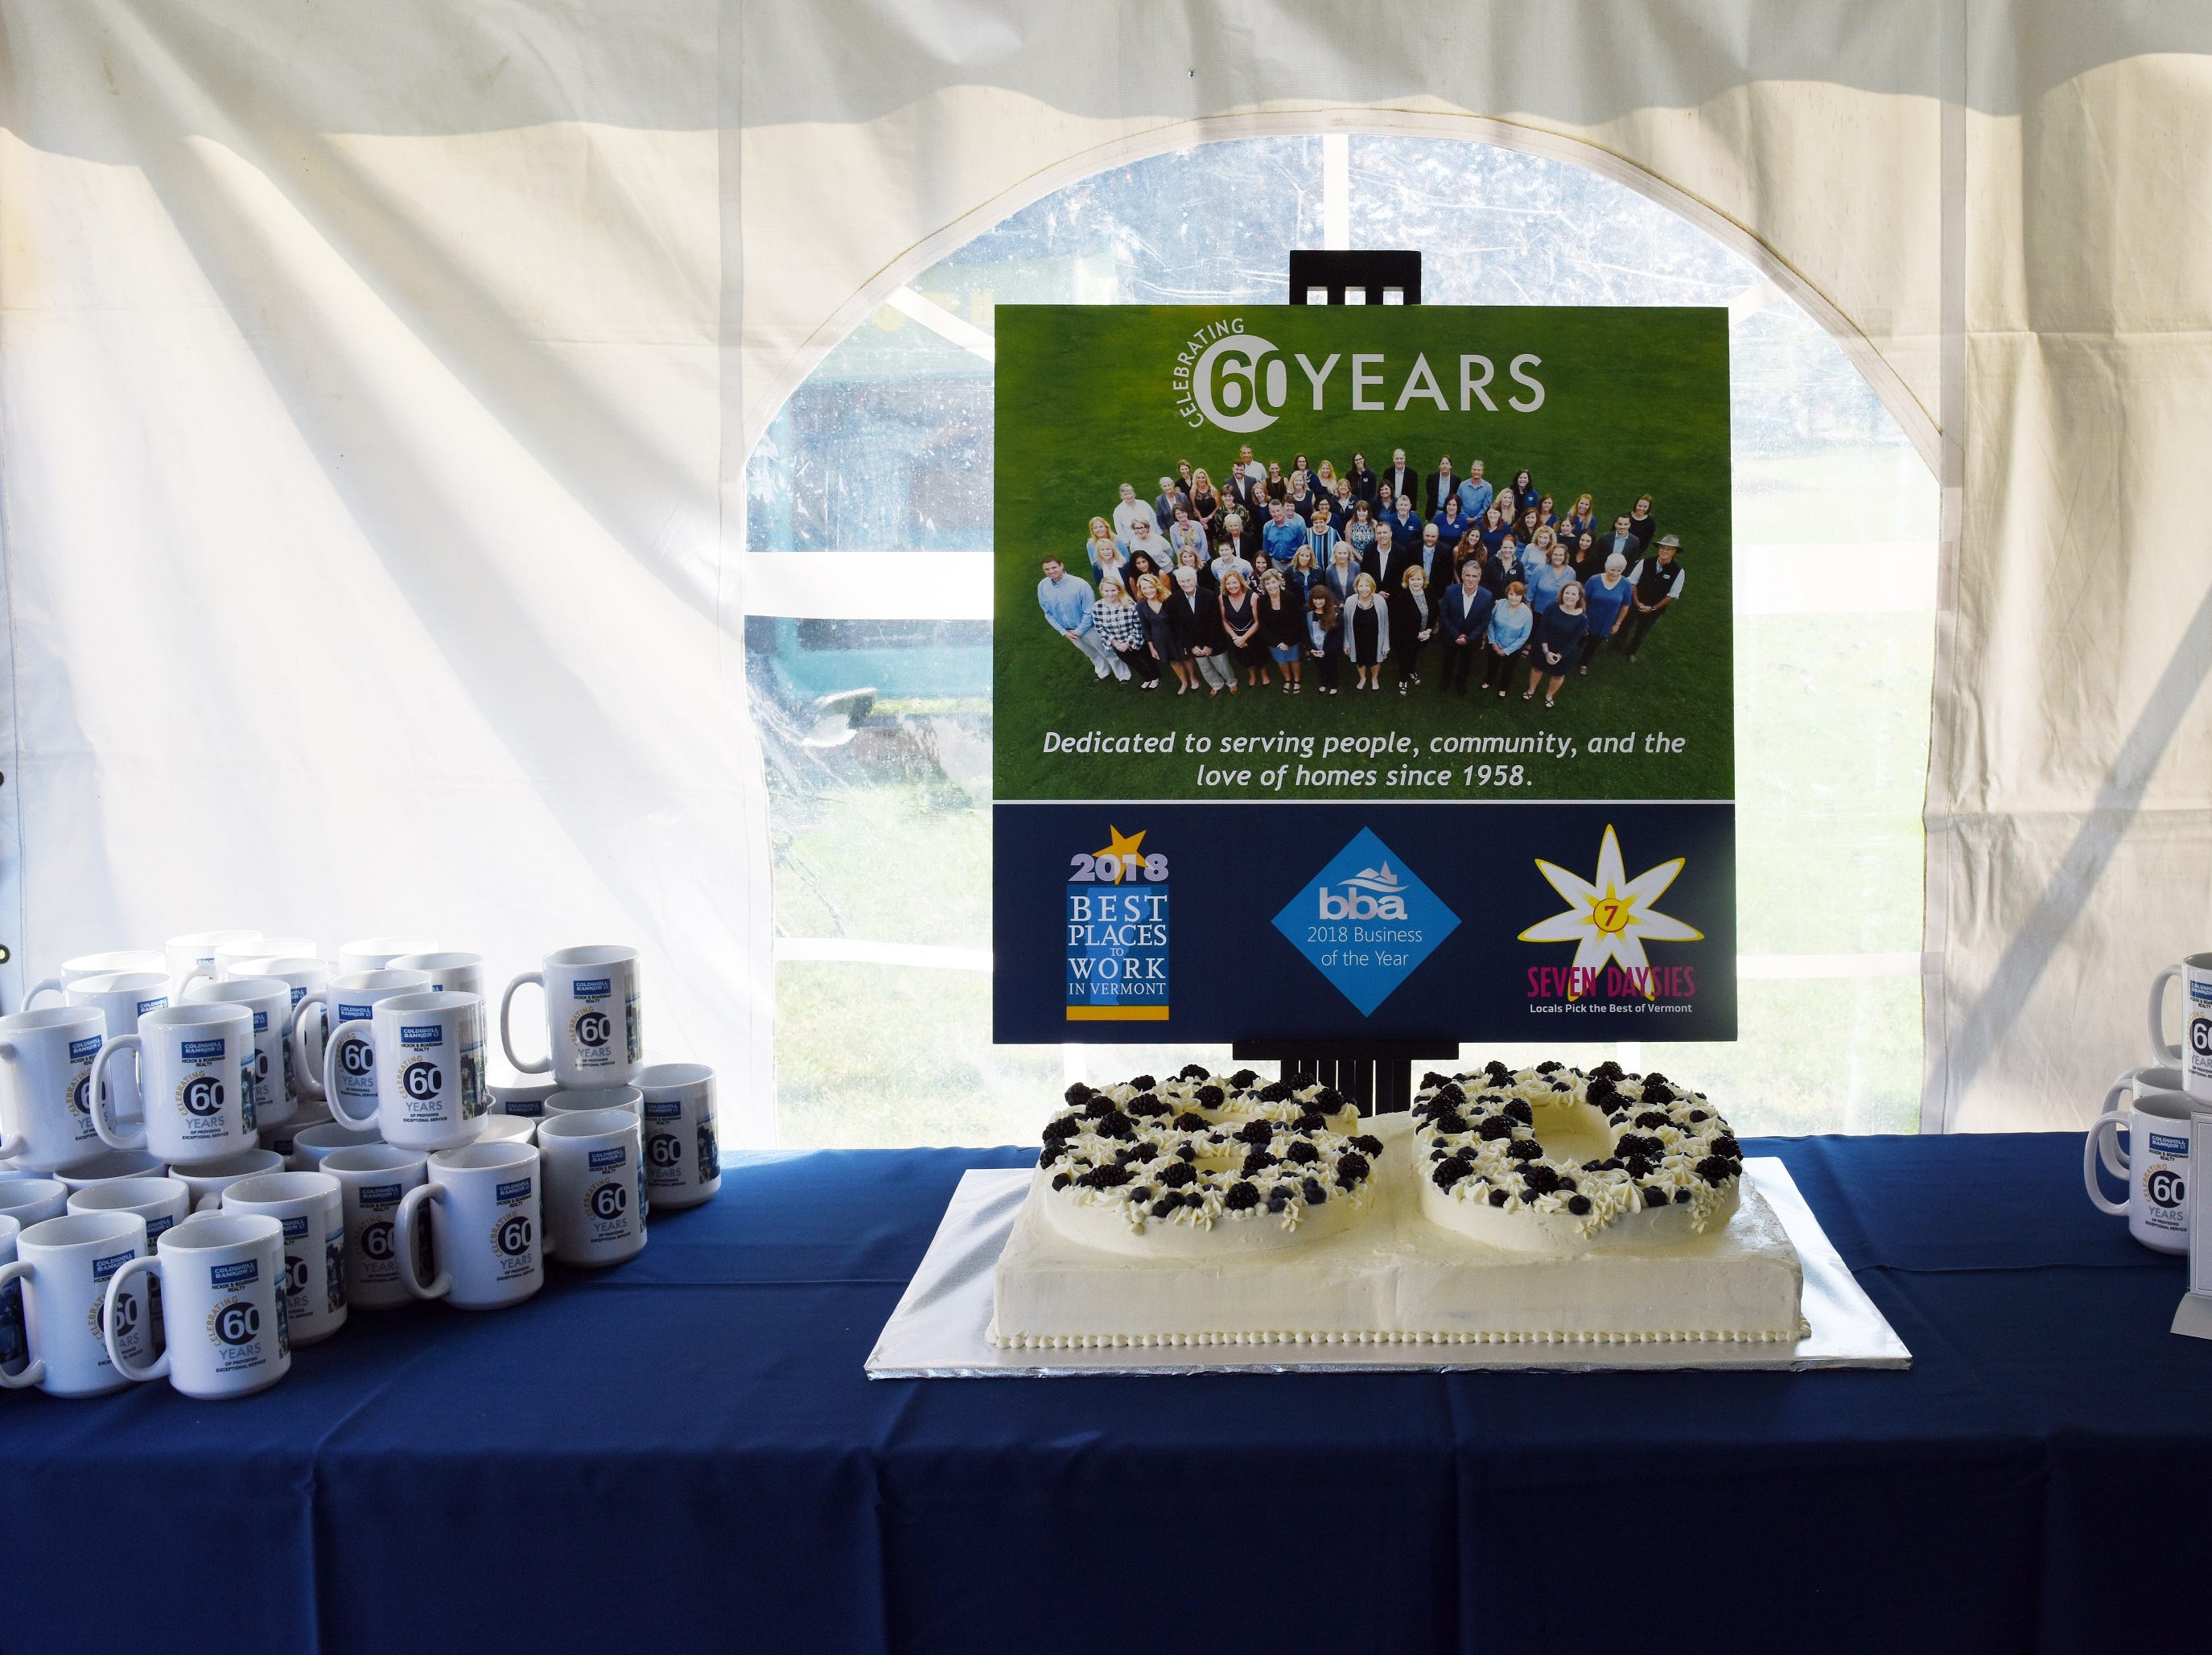 Coldwell Banker Hickok & Boardman celebrate their 60th Anniversary on September 13, 2018, with current and past agents and community leaders in Burlington, VT.